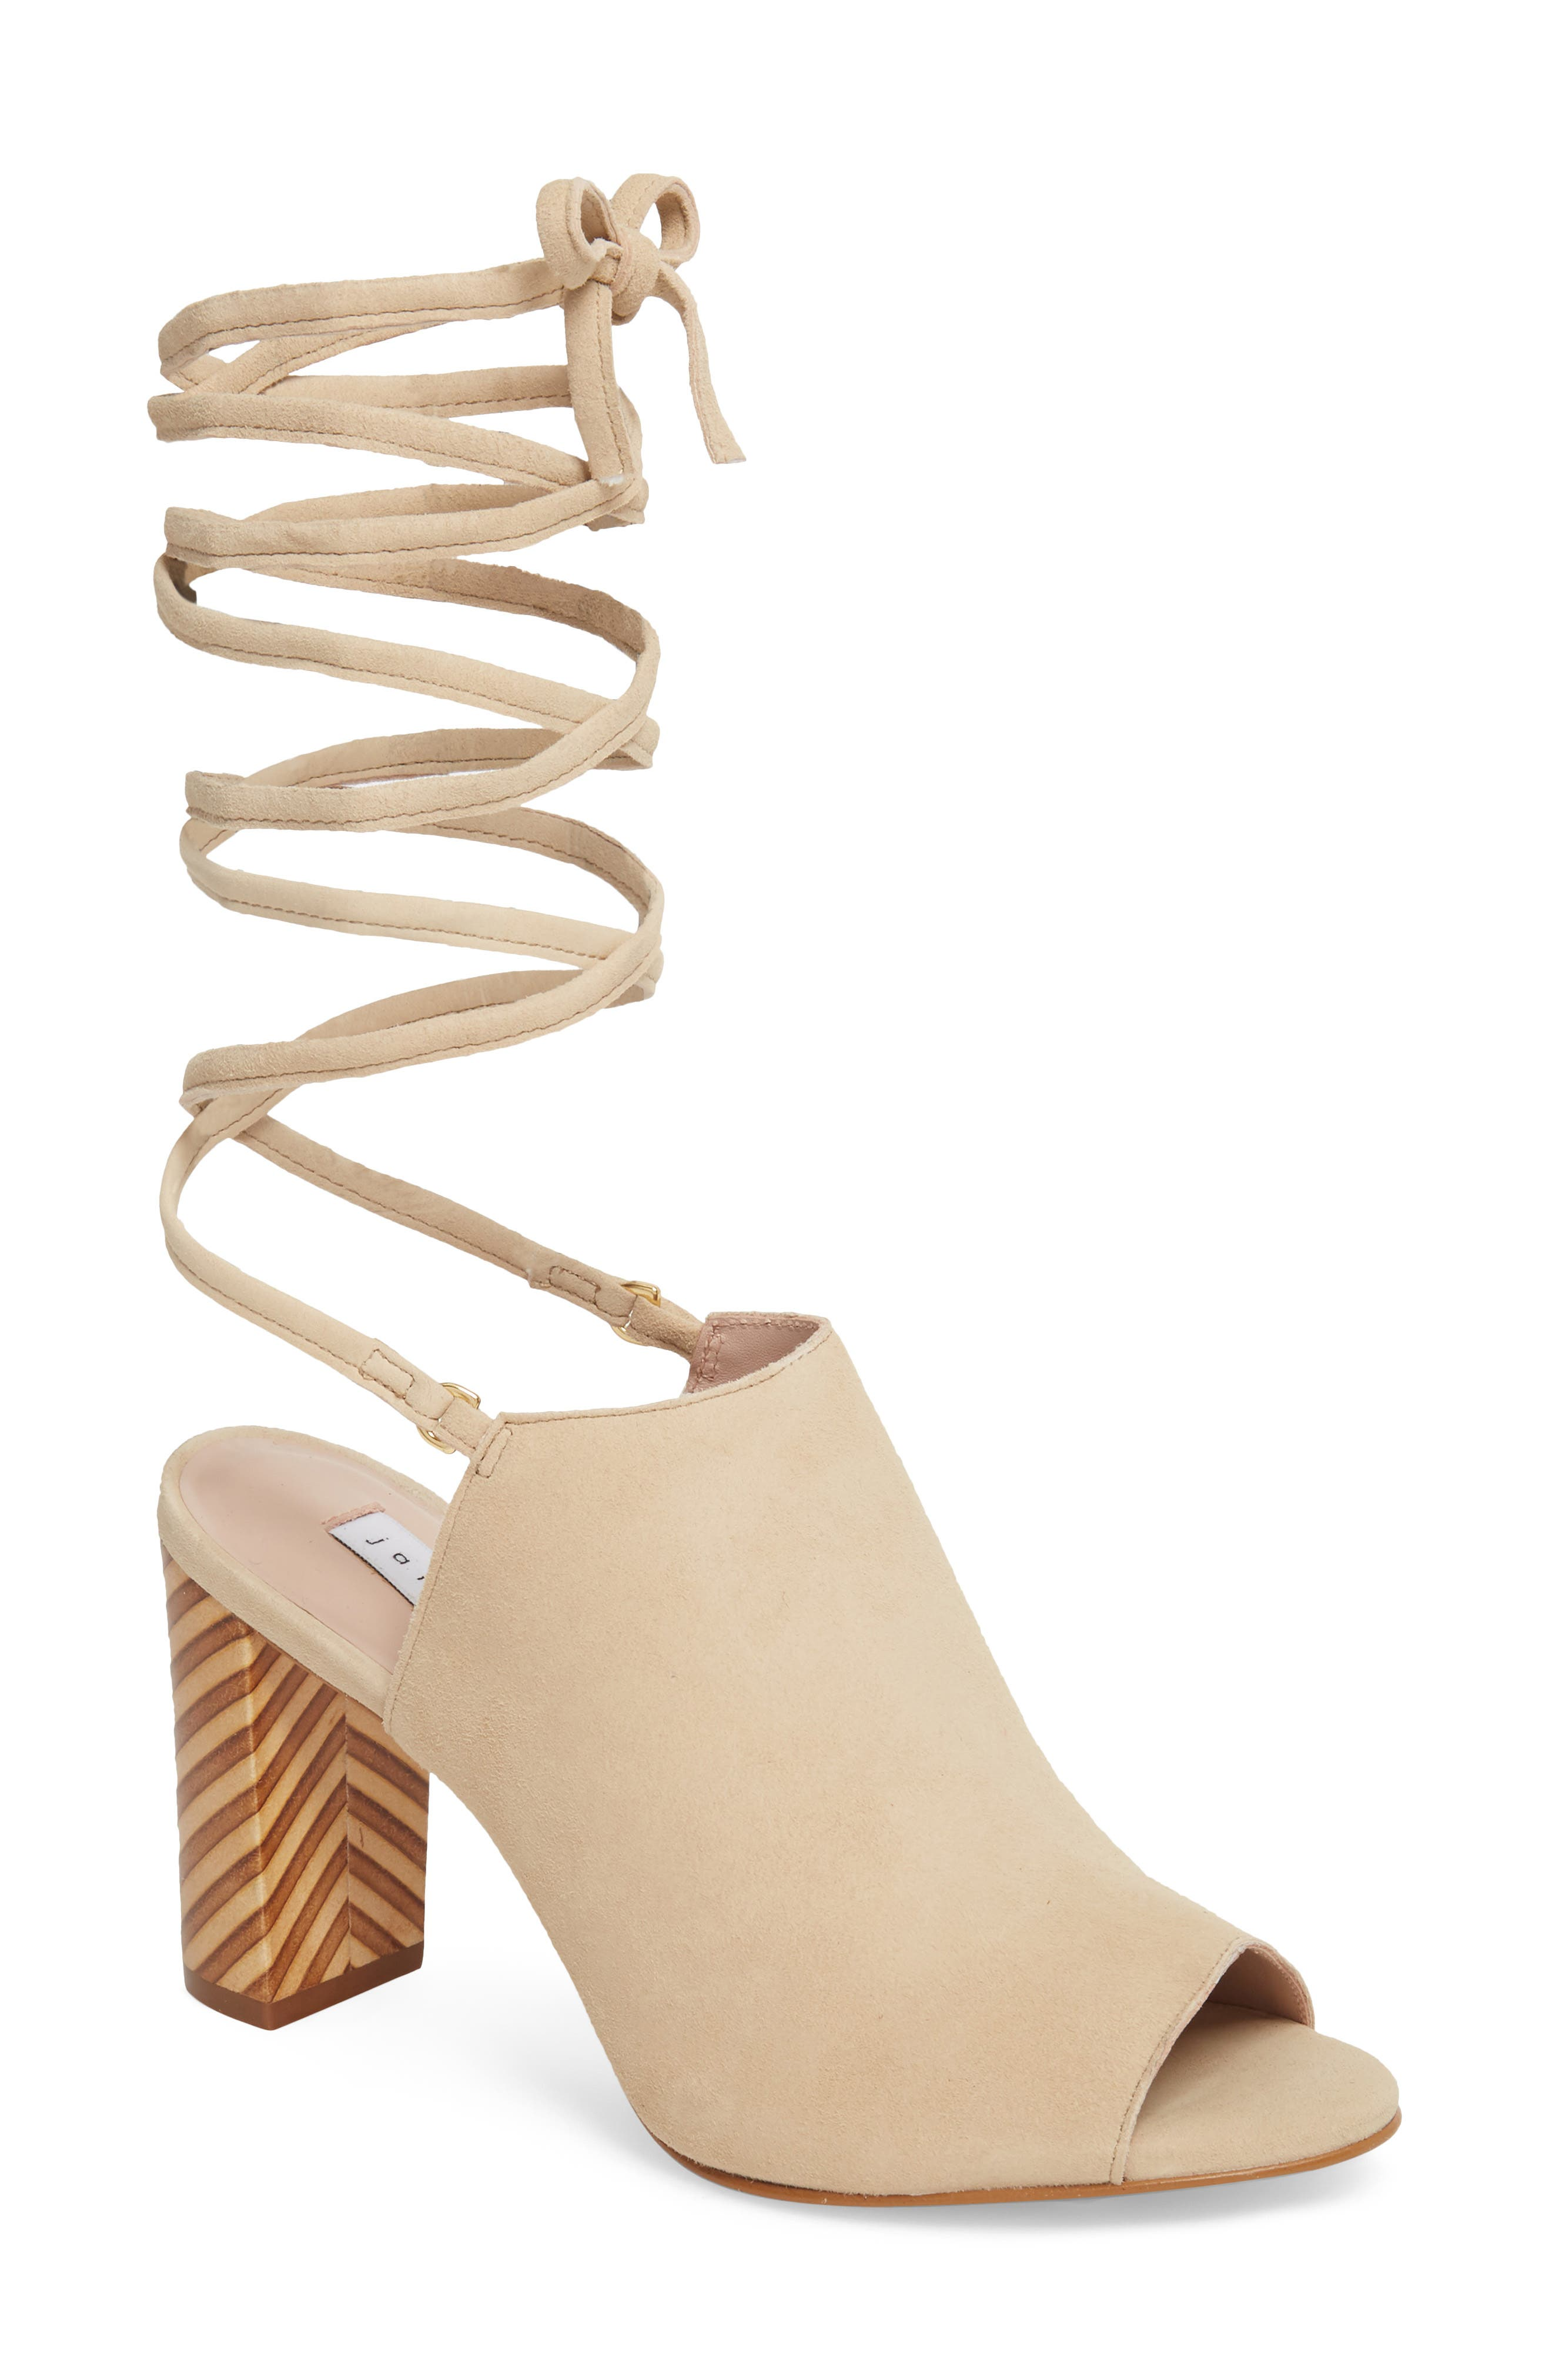 Allegra Ankle Wrap Sandal,                         Main,                         color, Sand Suede